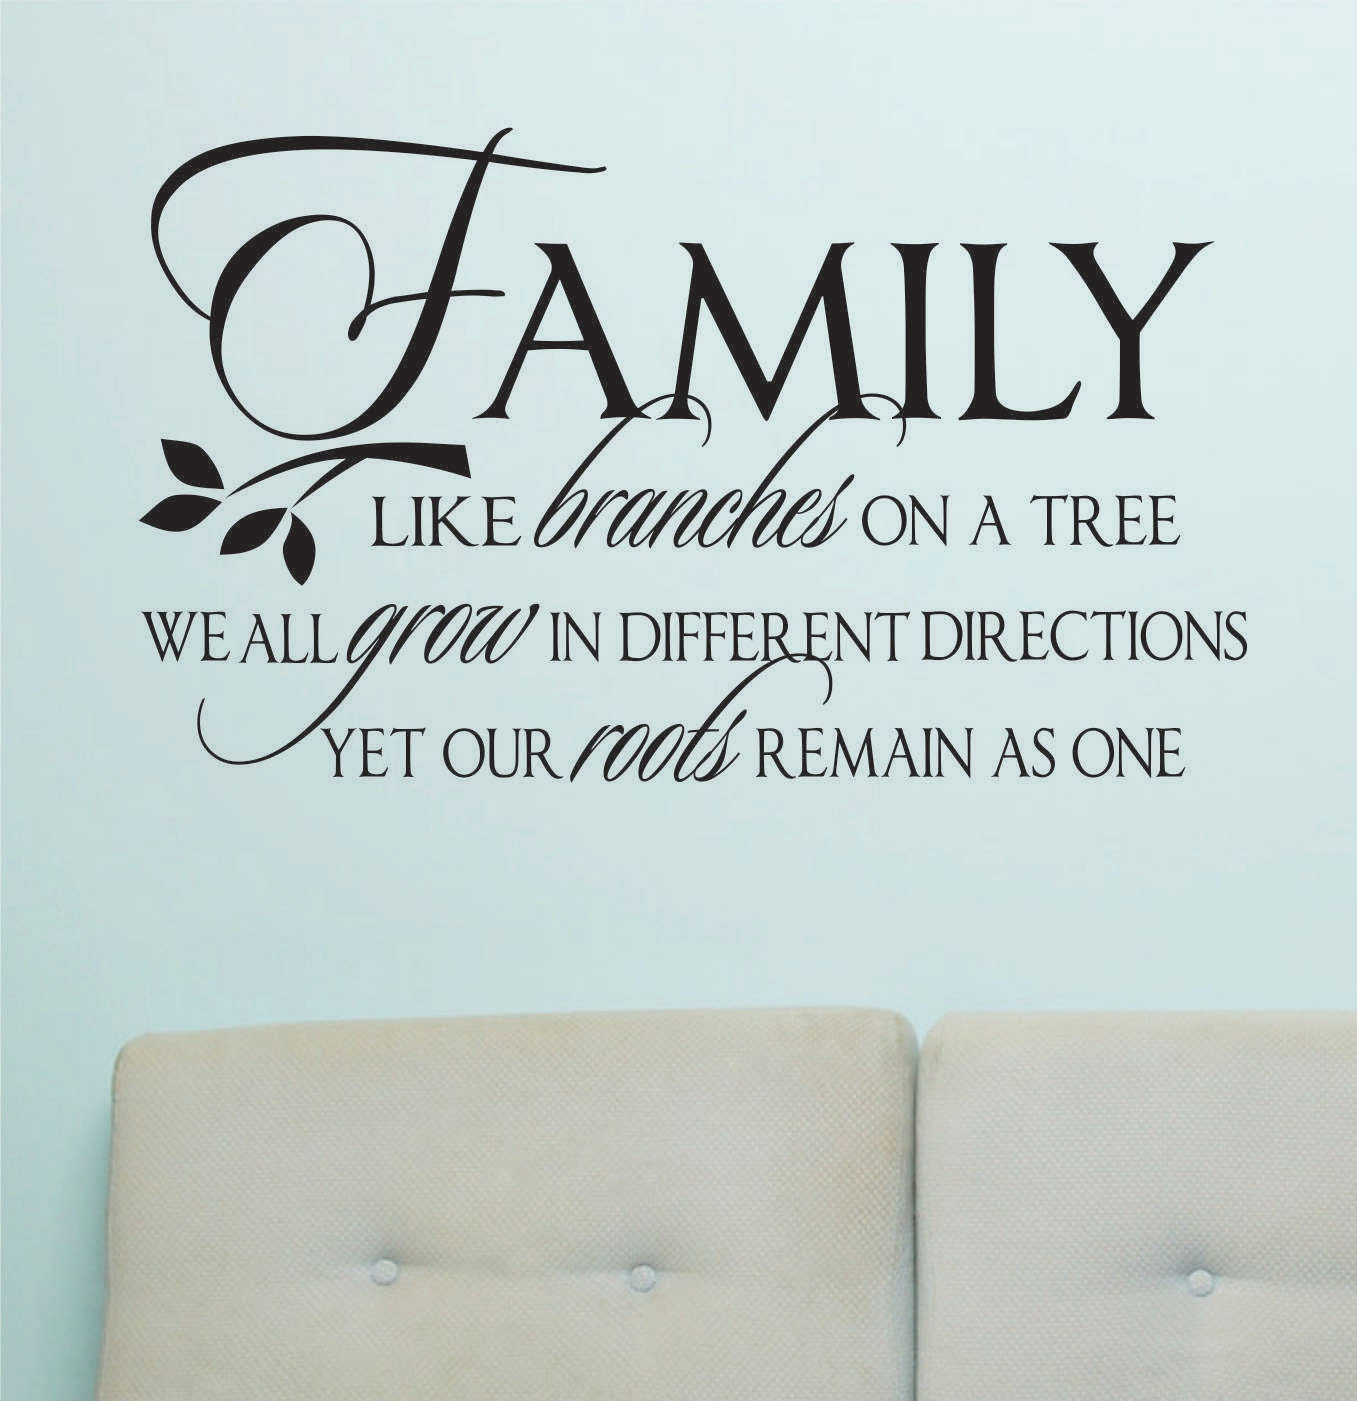 family helping family quotes quotesgram